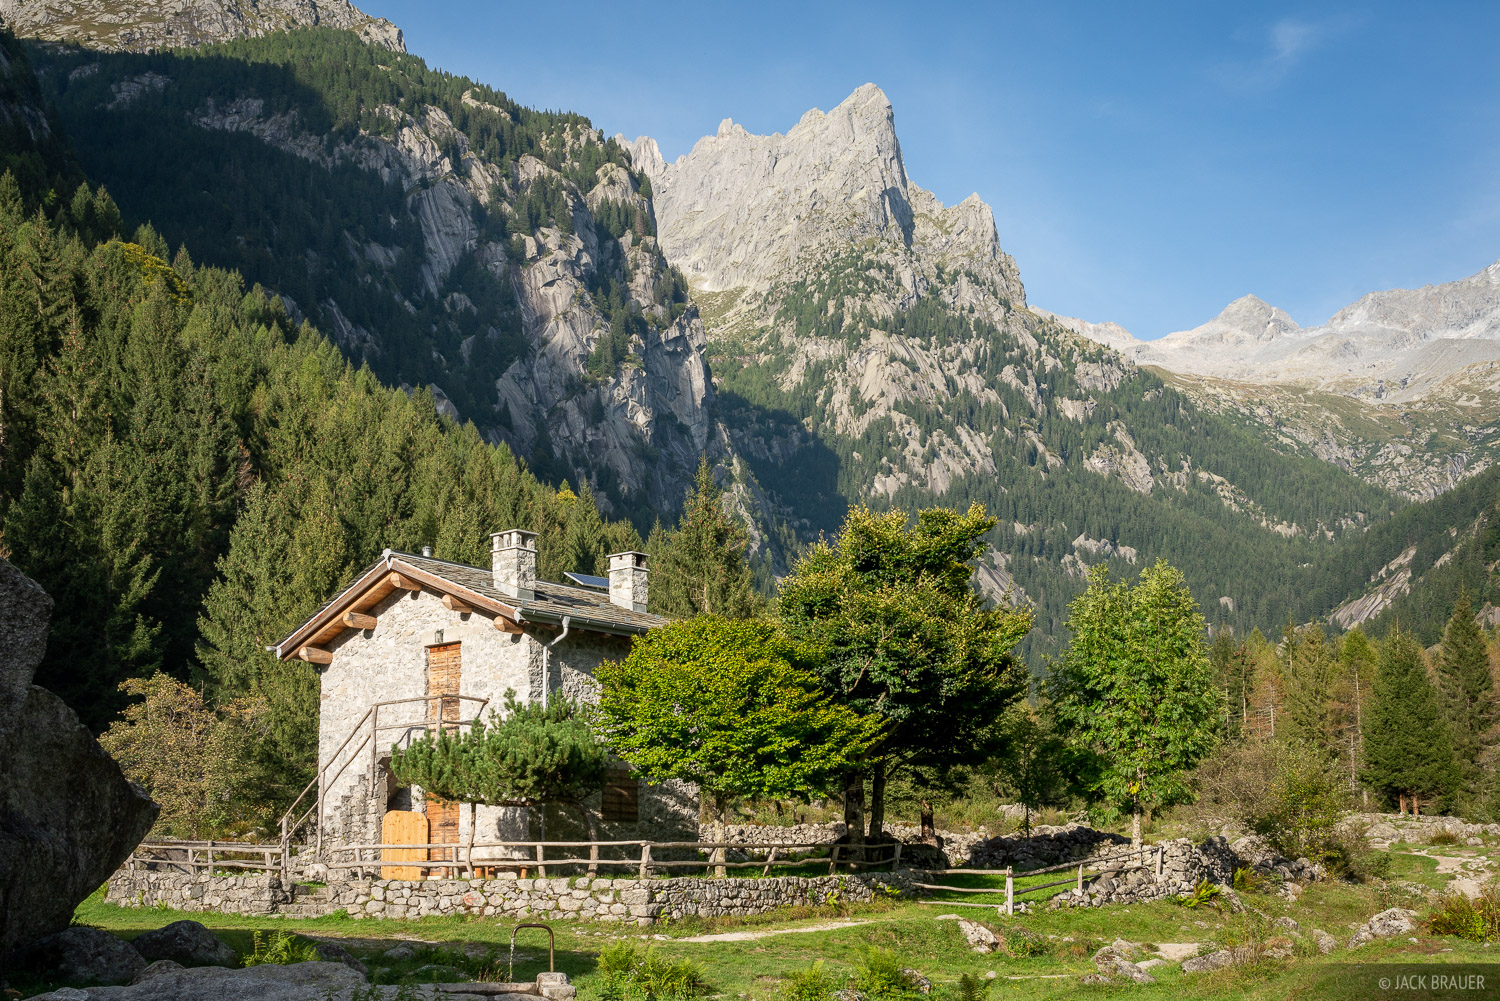 Italy, Rhaetian Alps, Val Masino, Valle di Mello, photo